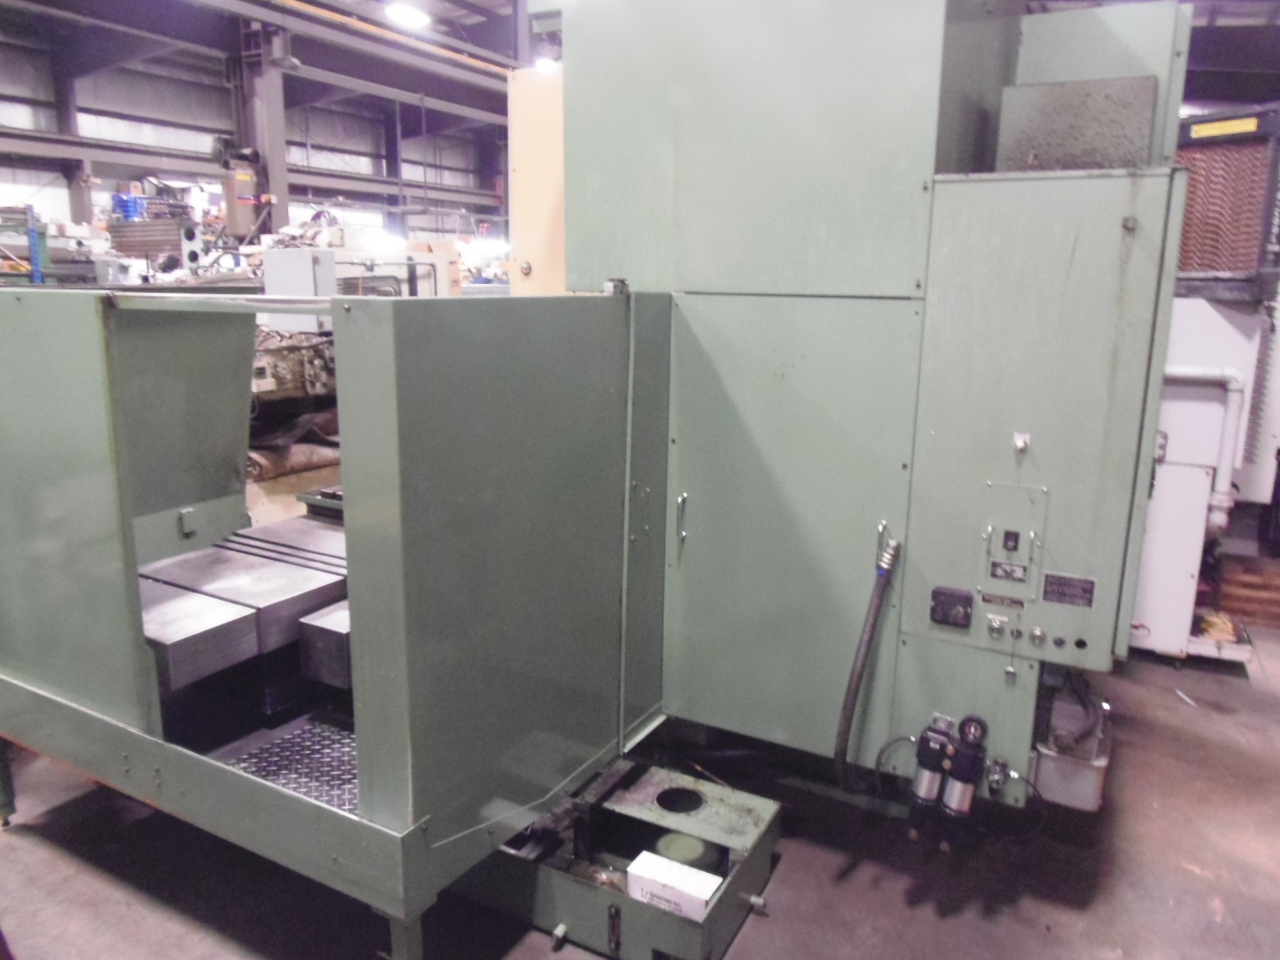 "MORI SEIKI MV-65, VERTICAL MACHINING CENTER, 25.5"" x 67"" TABLE, 30 ATC, 50 TAPER, FANUC 15-M, 1990, THRU SPINDLE COOLANT, WIRED FOR 4TH AXIS."